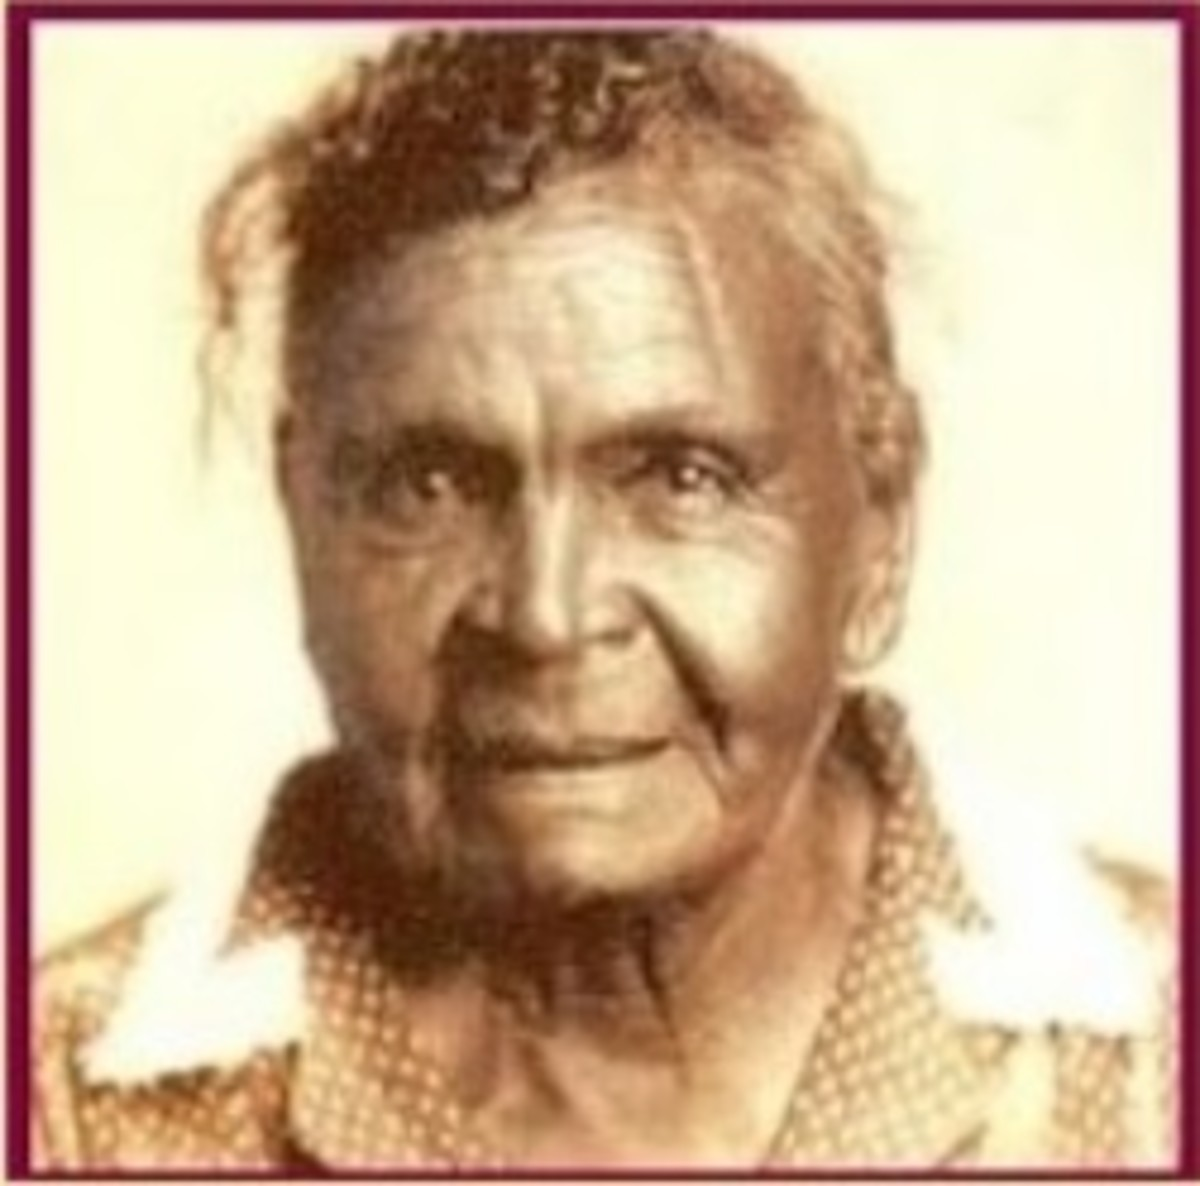 Angela Walton-Raji said she remembers drinking sassafras tea with her great-grandmother, Sallie Walton, pictured. Sassafras, or kvfi, is a part of Choctaw culture important enough that it has a month named after it. (Photo courtesy of Angela Walton-Raji, Underscore)